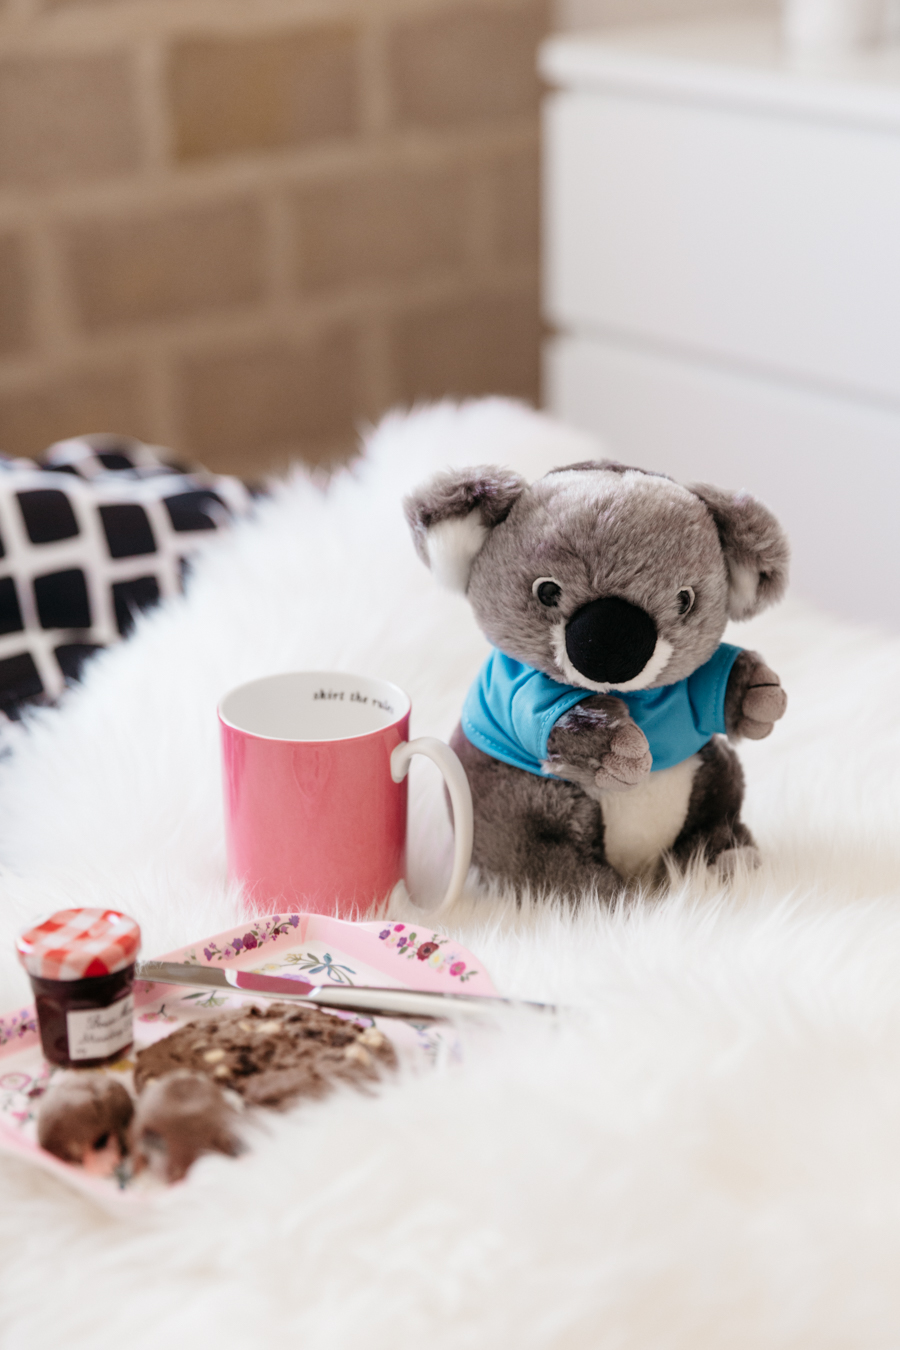 Kate Spade skirt the rules mug. Adopt a Koala. Koala Mattress review.